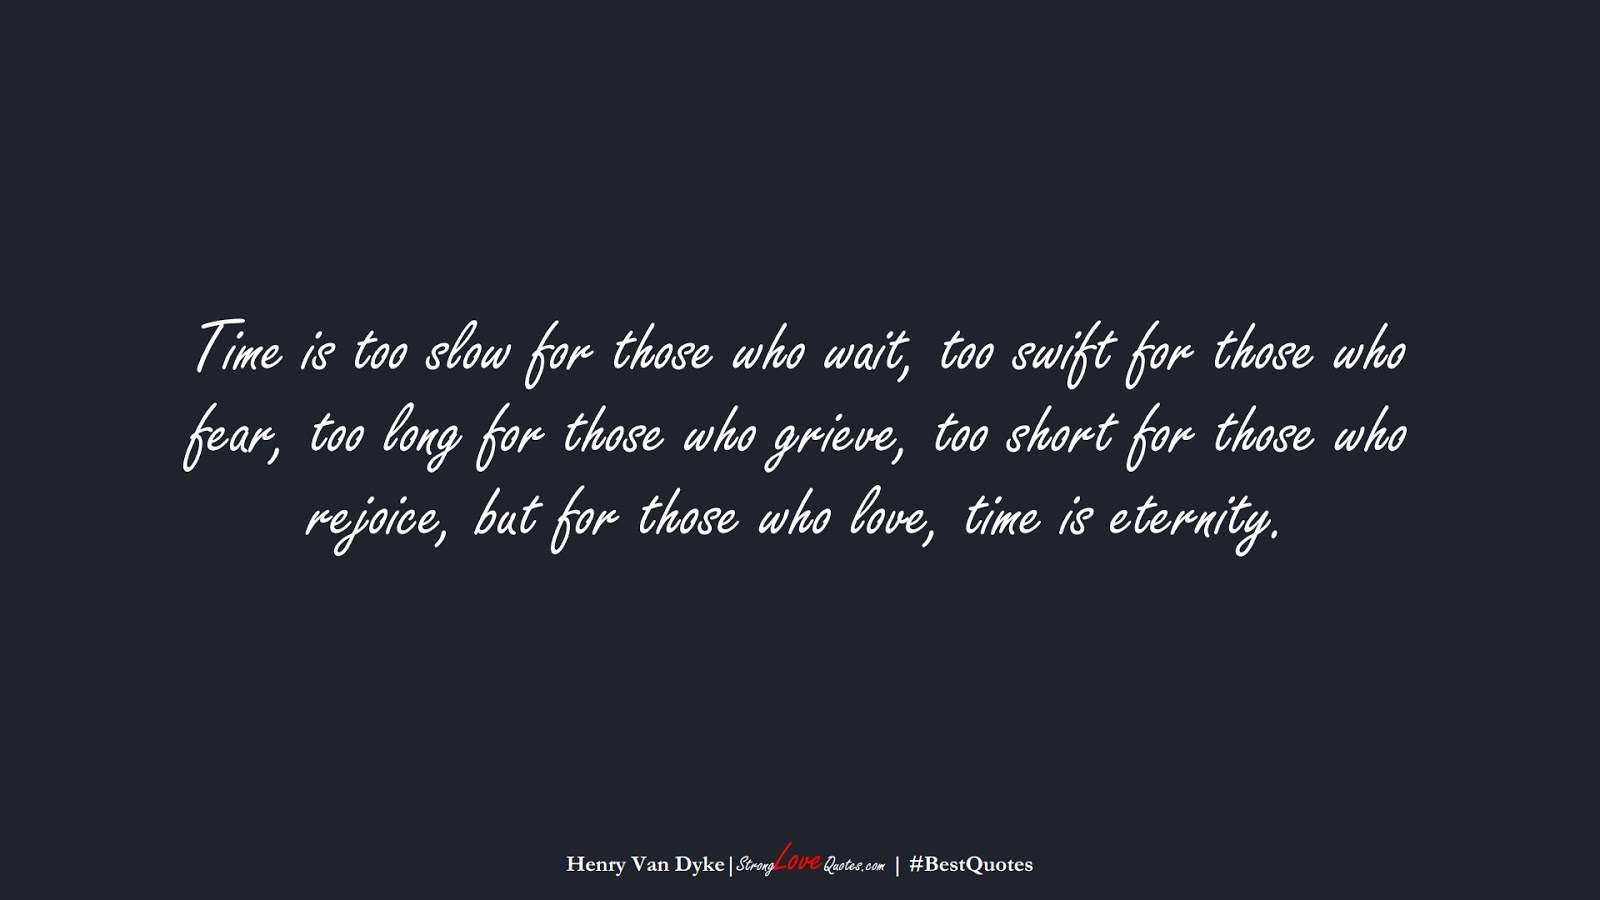 Time is too slow for those who wait, too swift for those who fear, too long for those who grieve, too short for those who rejoice, but for those who love, time is eternity. (Henry Van Dyke);  #BestQuotes